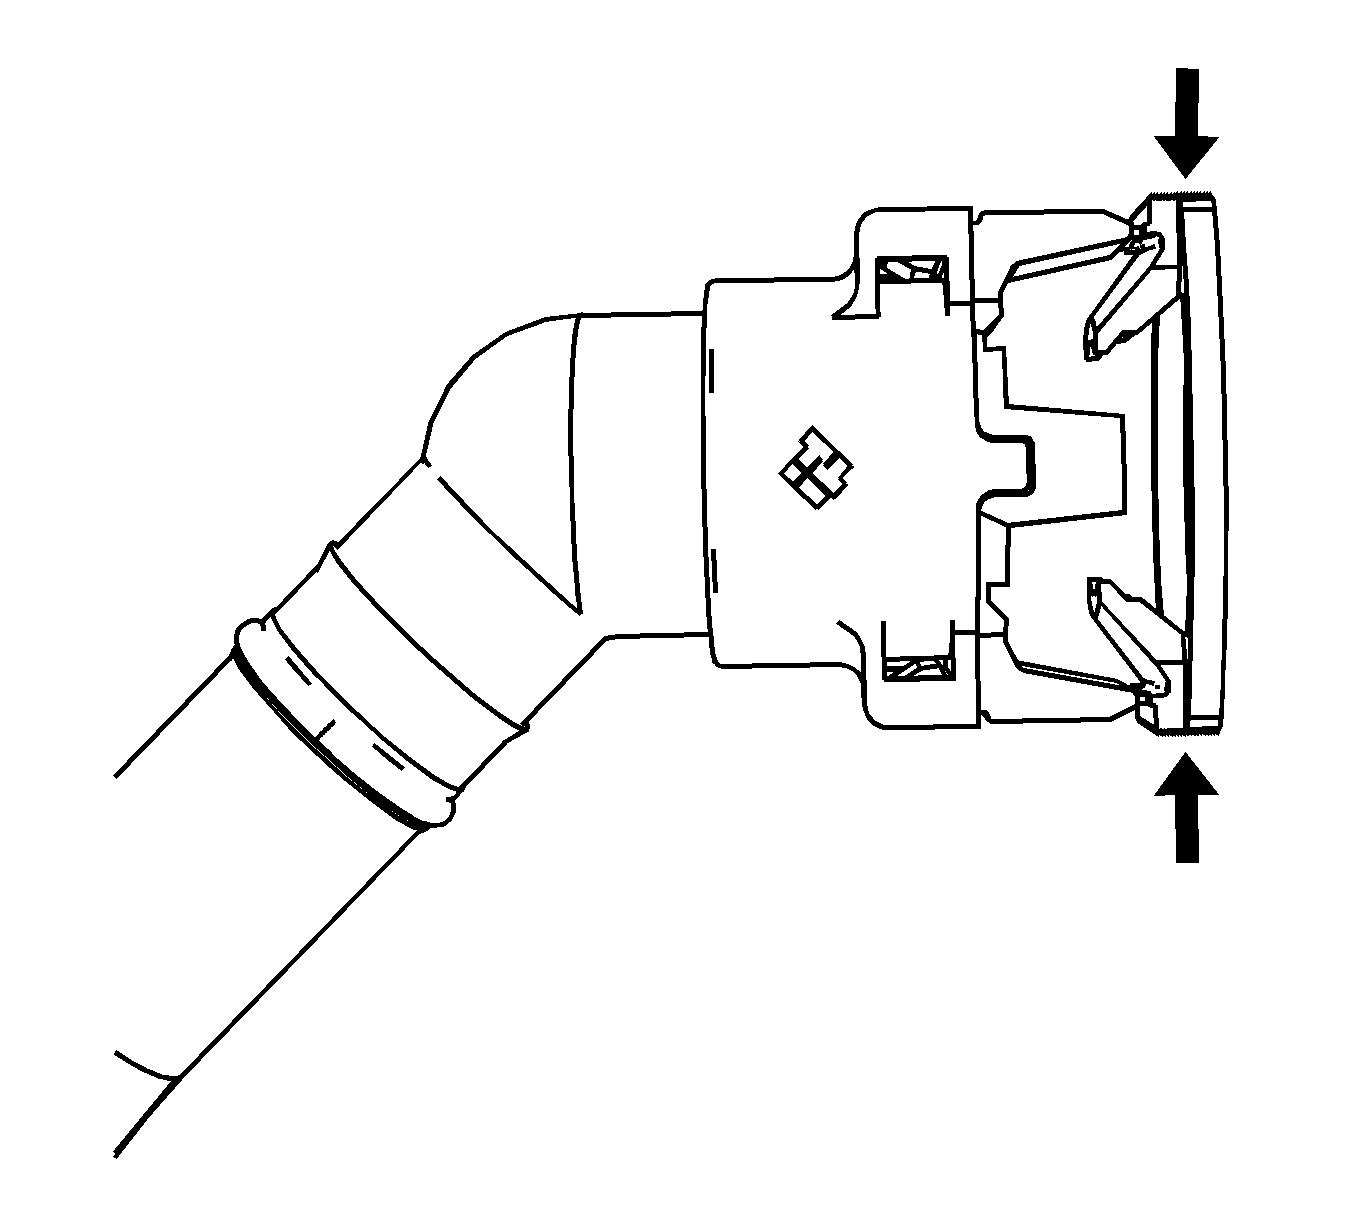 hight resolution of 2003 buick lesabre thermostat diagram